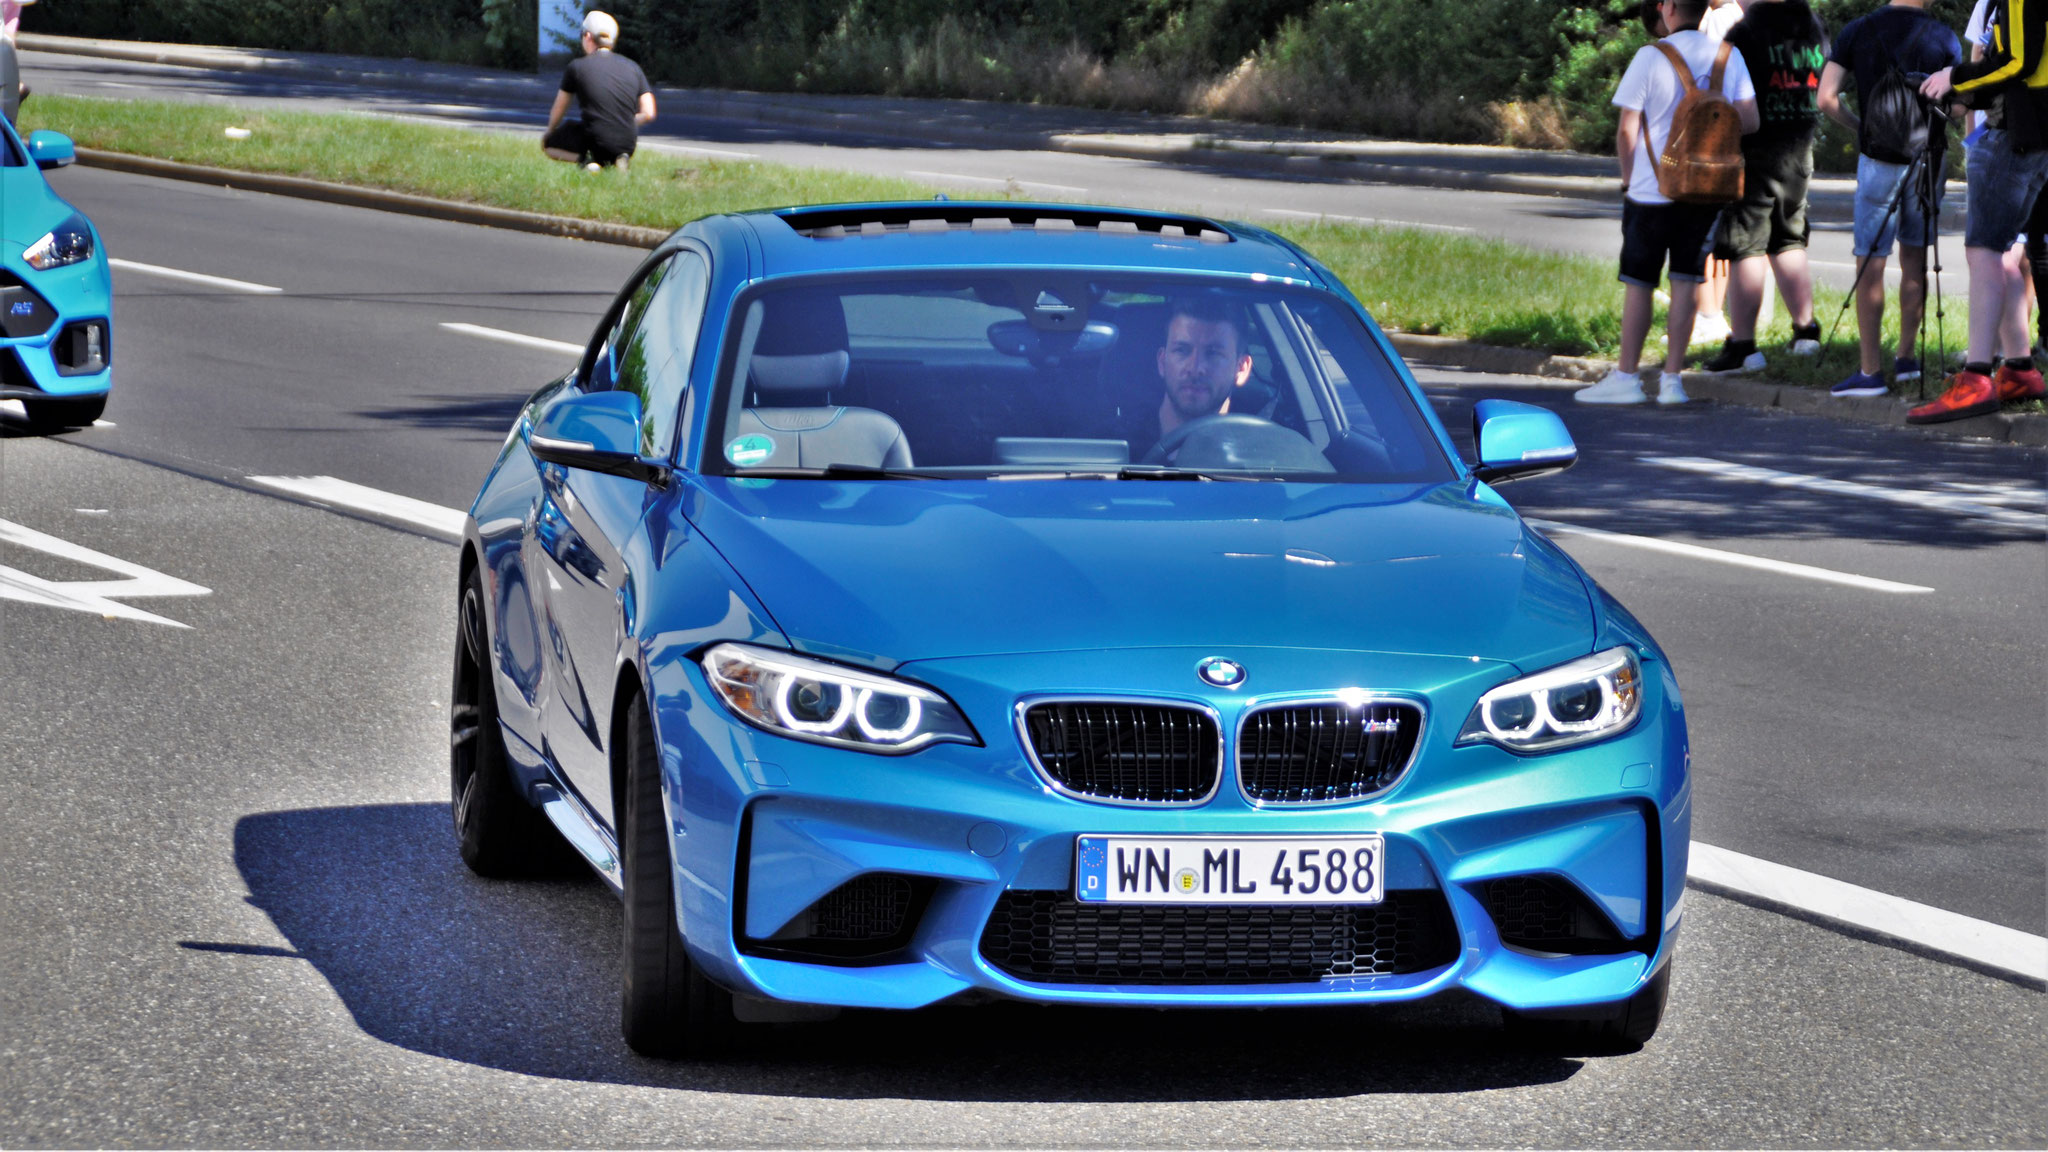 BMW M2 - WN-ML-4588